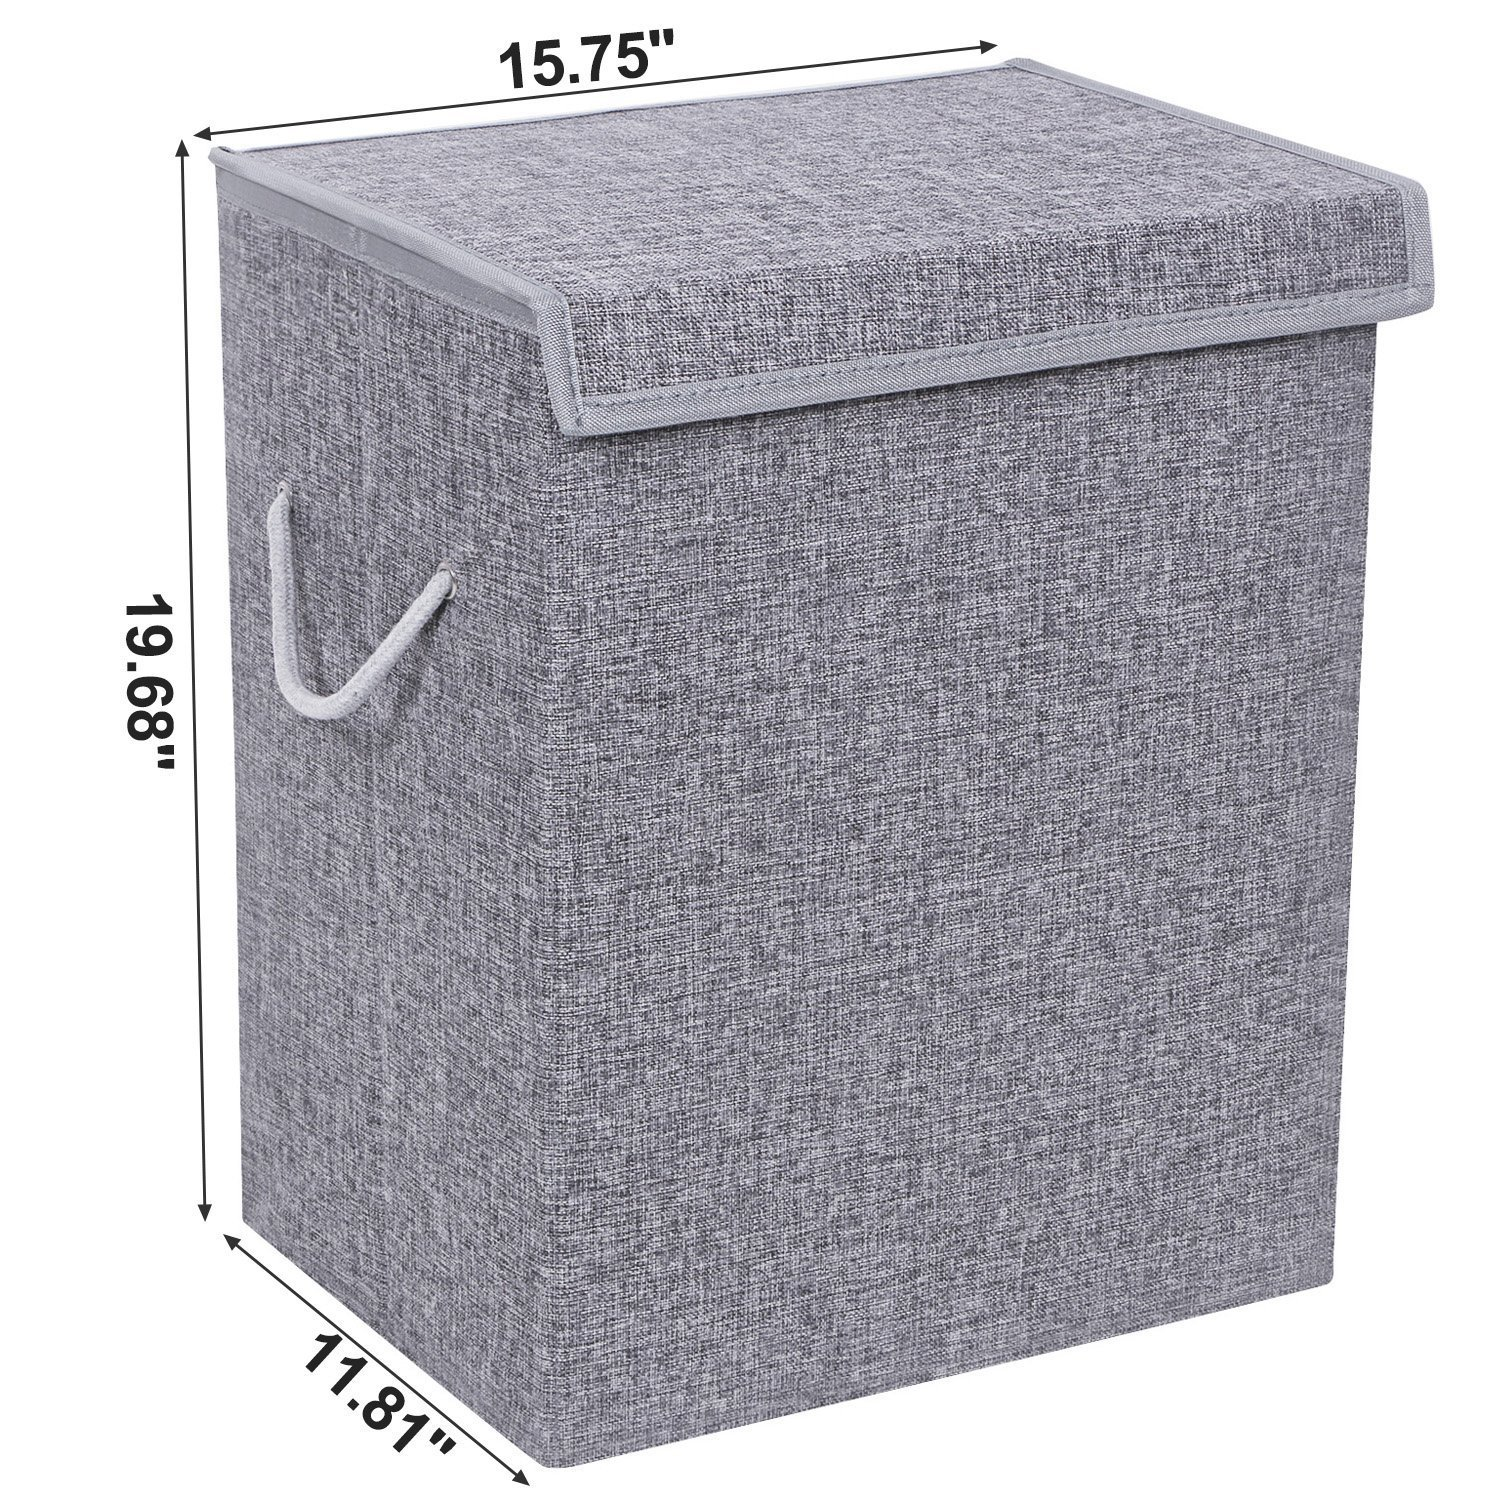 BEWISHOME Foldable Laundry Hamper,Large Laundry Basket Storage Bin for Clothes,Dirty Clothes Hamper w/Lids/Velcro,Grey Hamper with Removable liners & Sturdy Handles Grey YYL01G by BEWISHOME (Image #3)